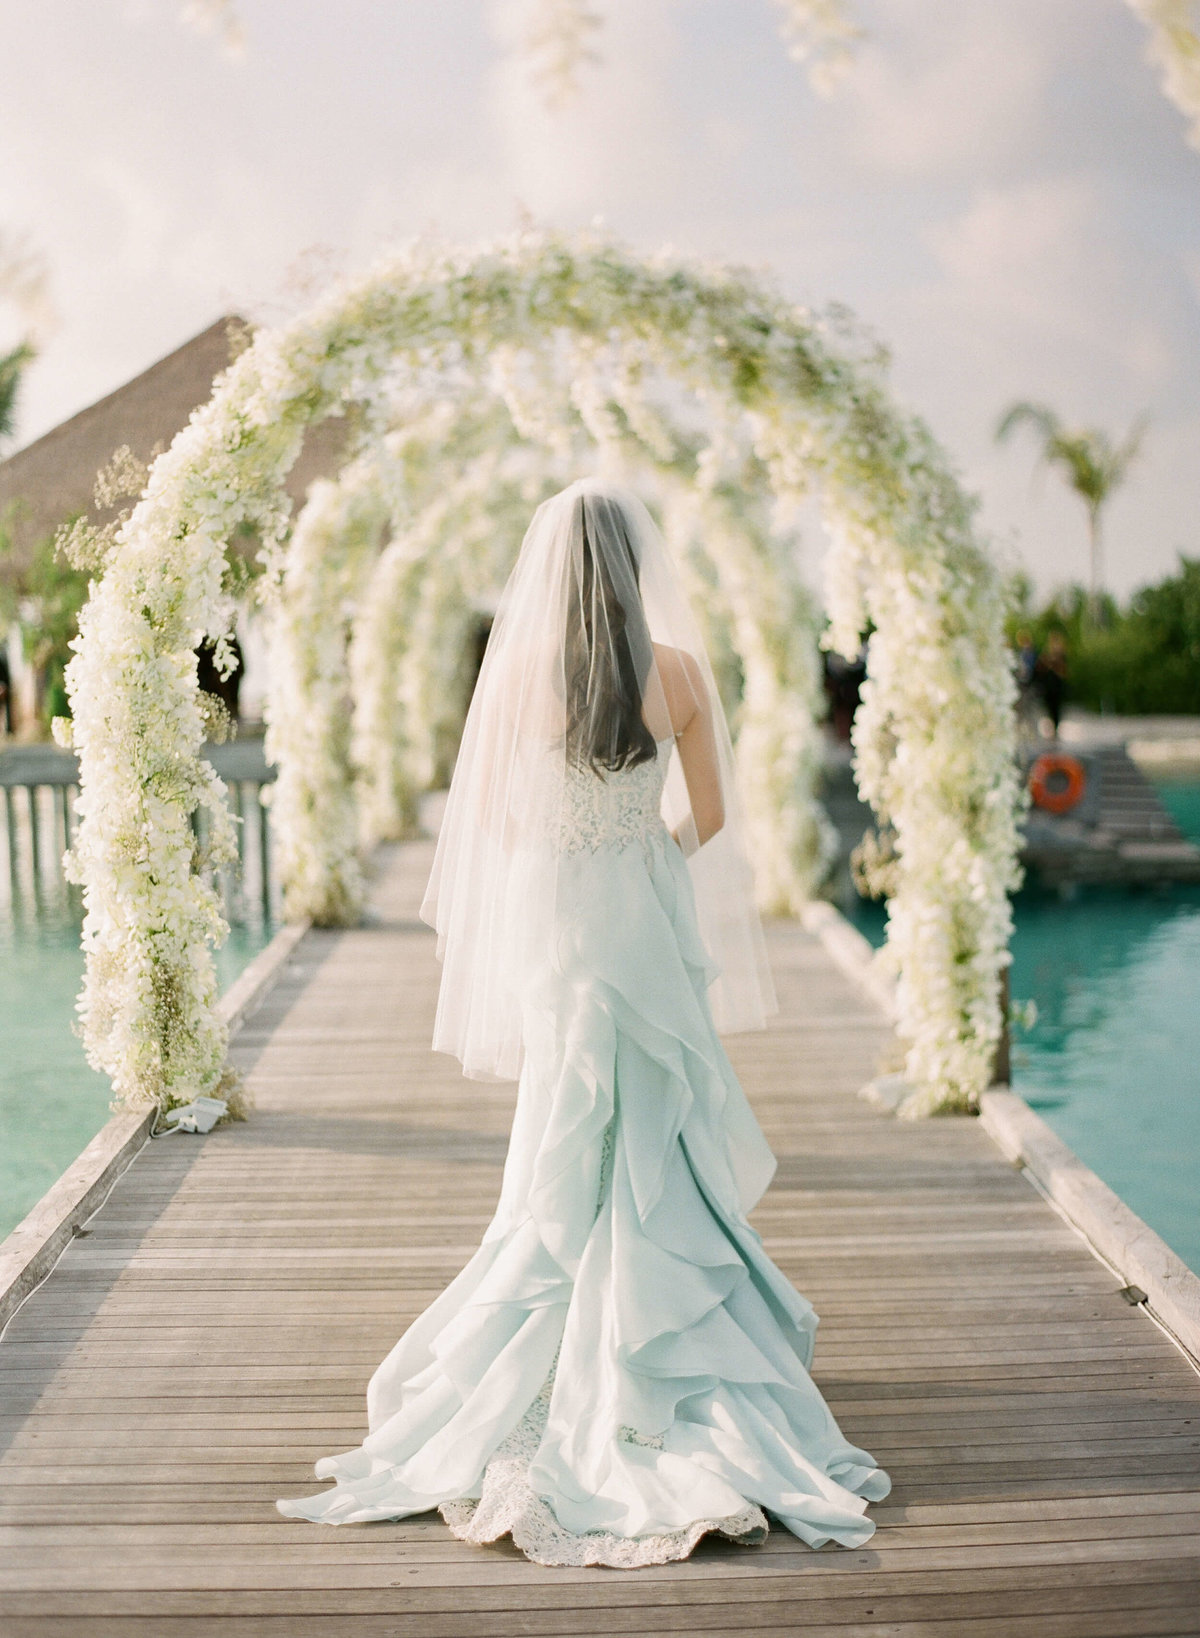 55-KTMerry-destinationwedding-bride-processional-Maldives